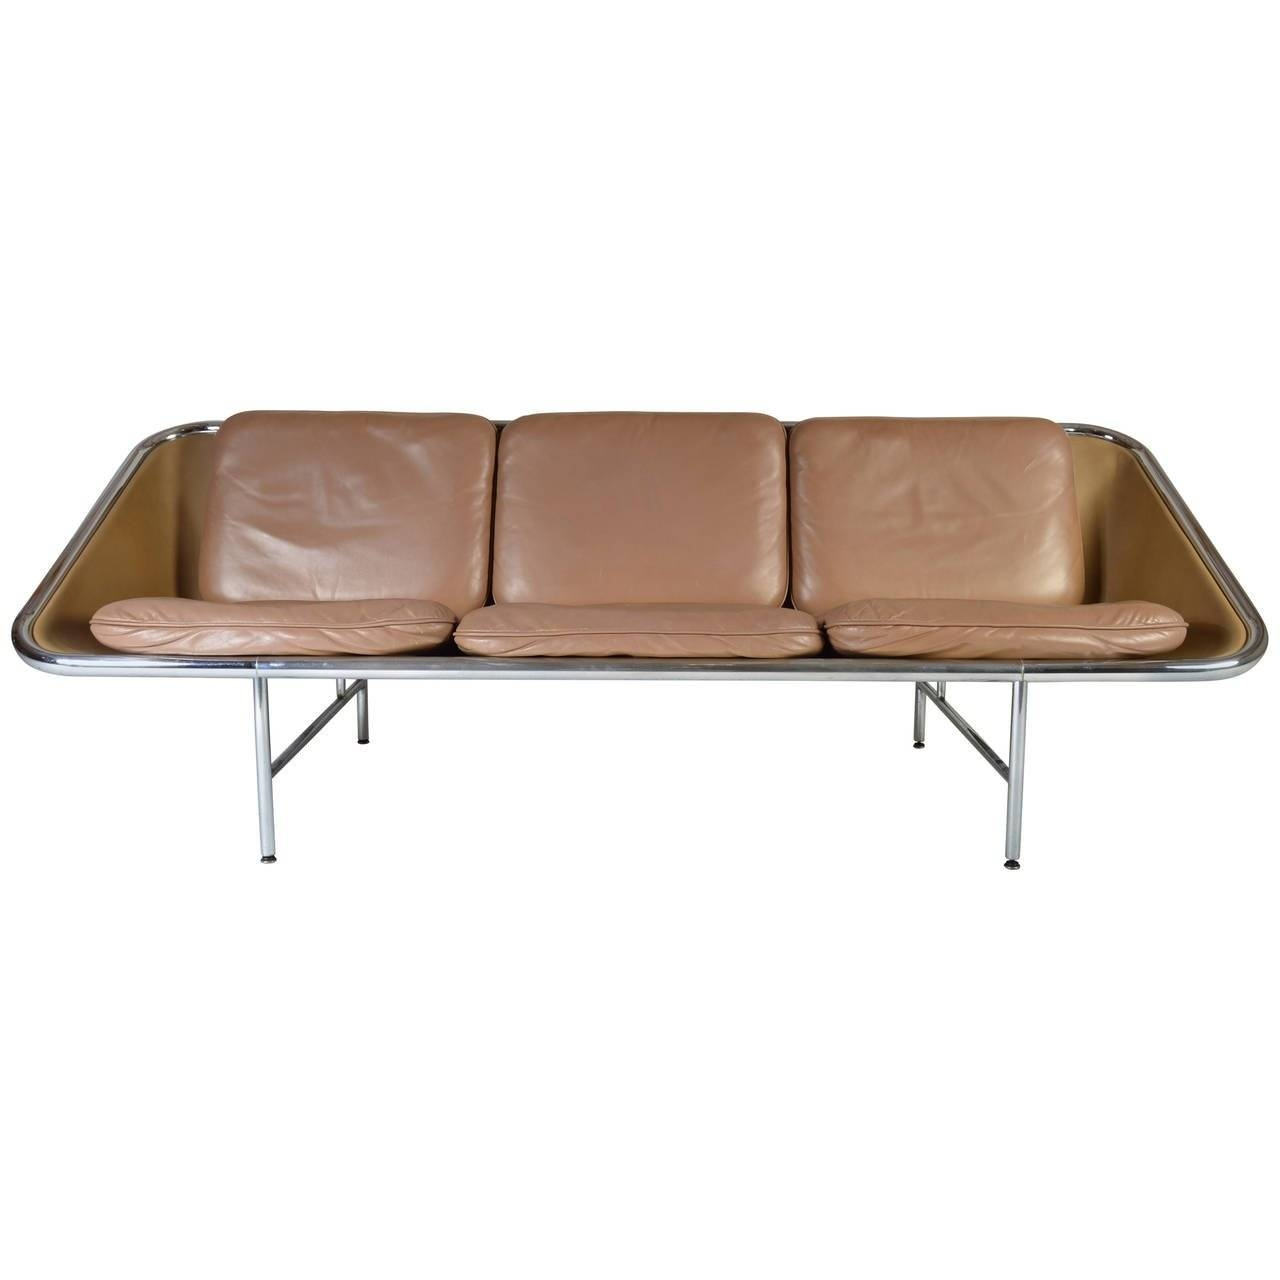 George Nelson Sling Sofa For Herman Miller At 1Stdibs inside George Nelson Sofas (Image 6 of 15)